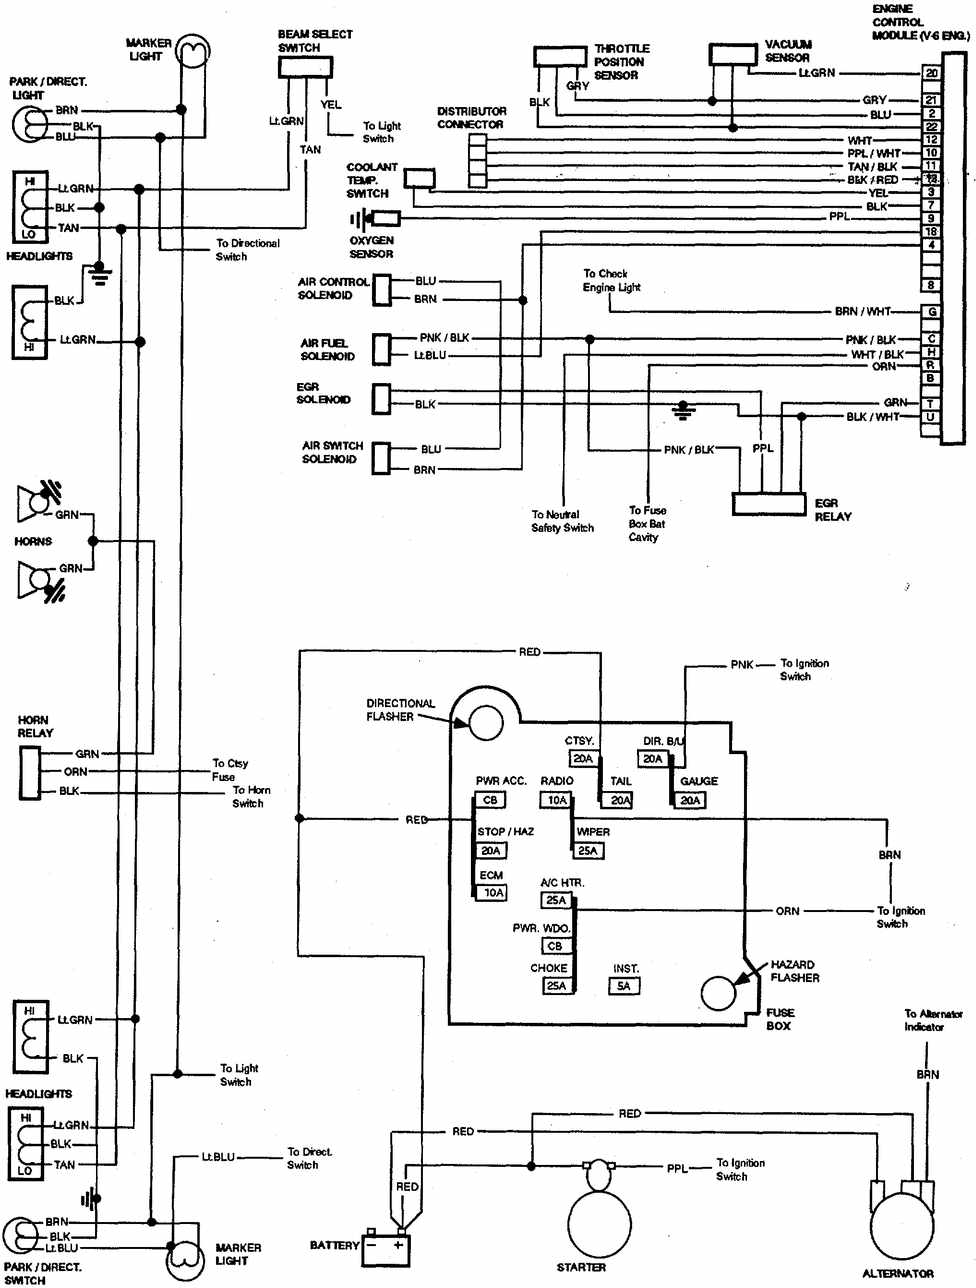 94 Ford Horn Relay Wiring Diagram Electrical 2000 Ranger Chevrolet V8 Trucks 1981 1987 2001 1949 F1